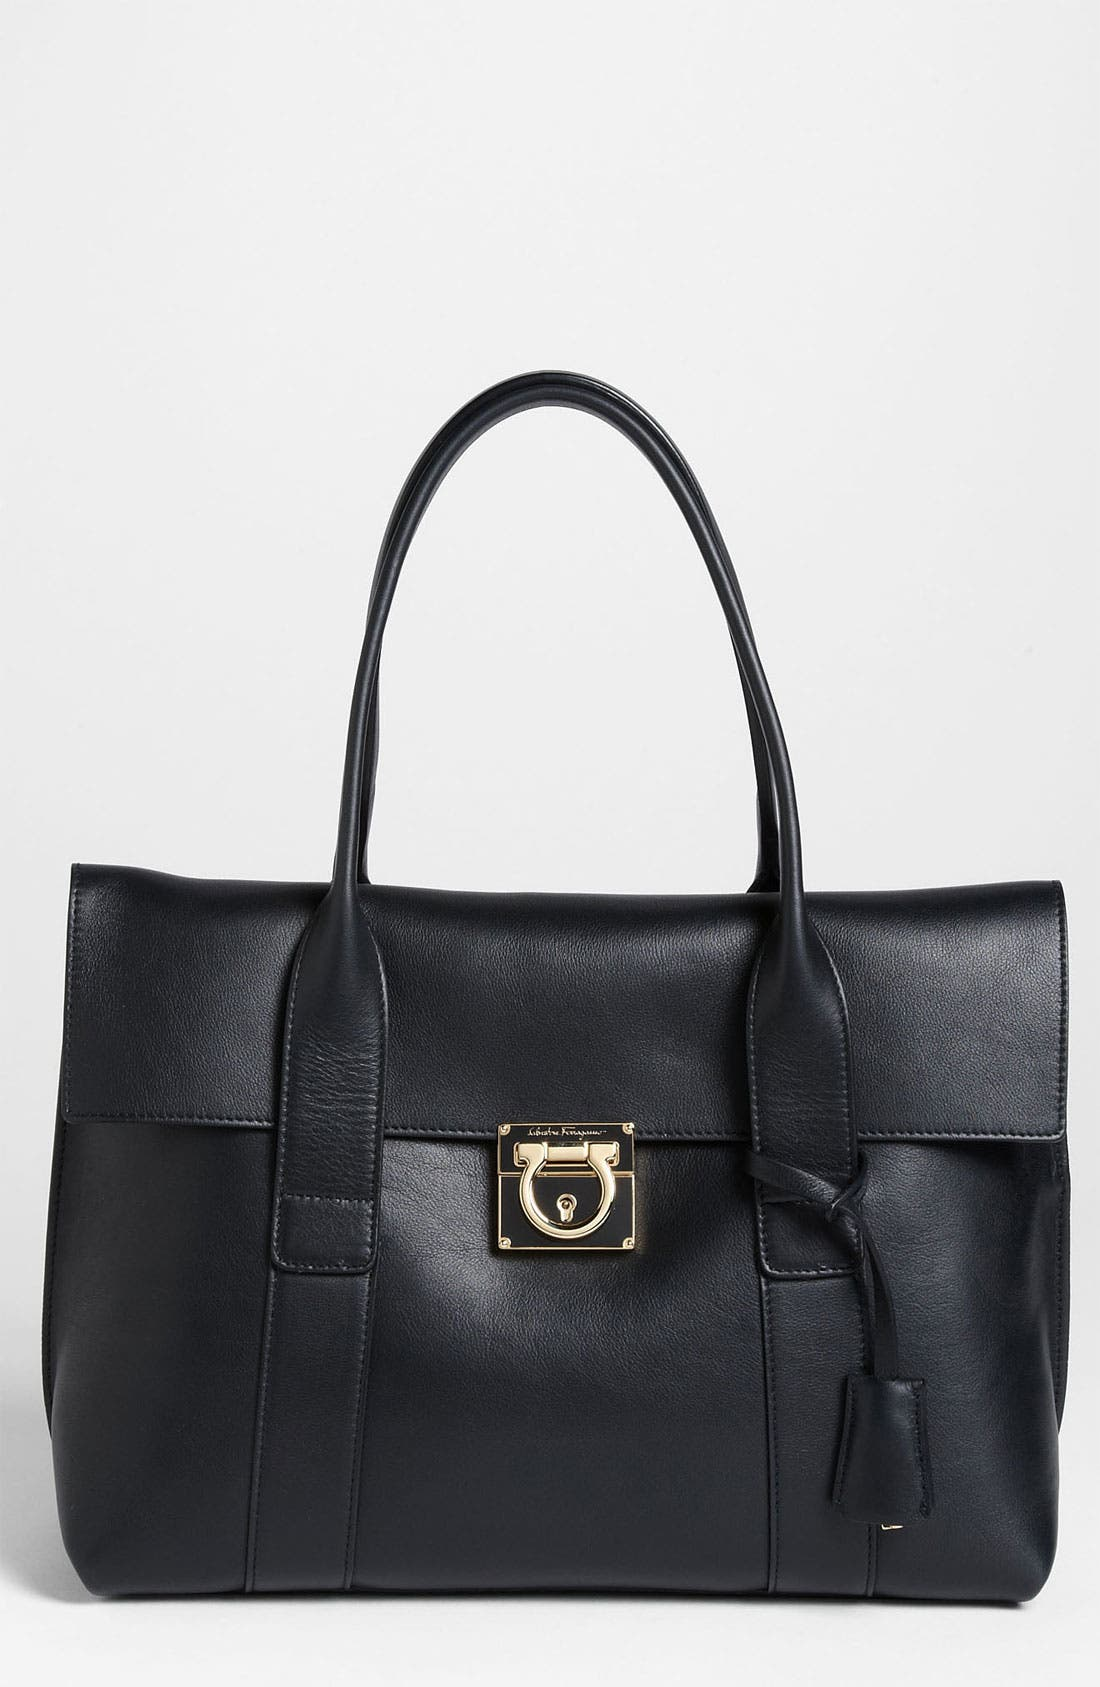 Main Image - Salvatore Ferragamo 'Medium Sookie' Leather Satchel